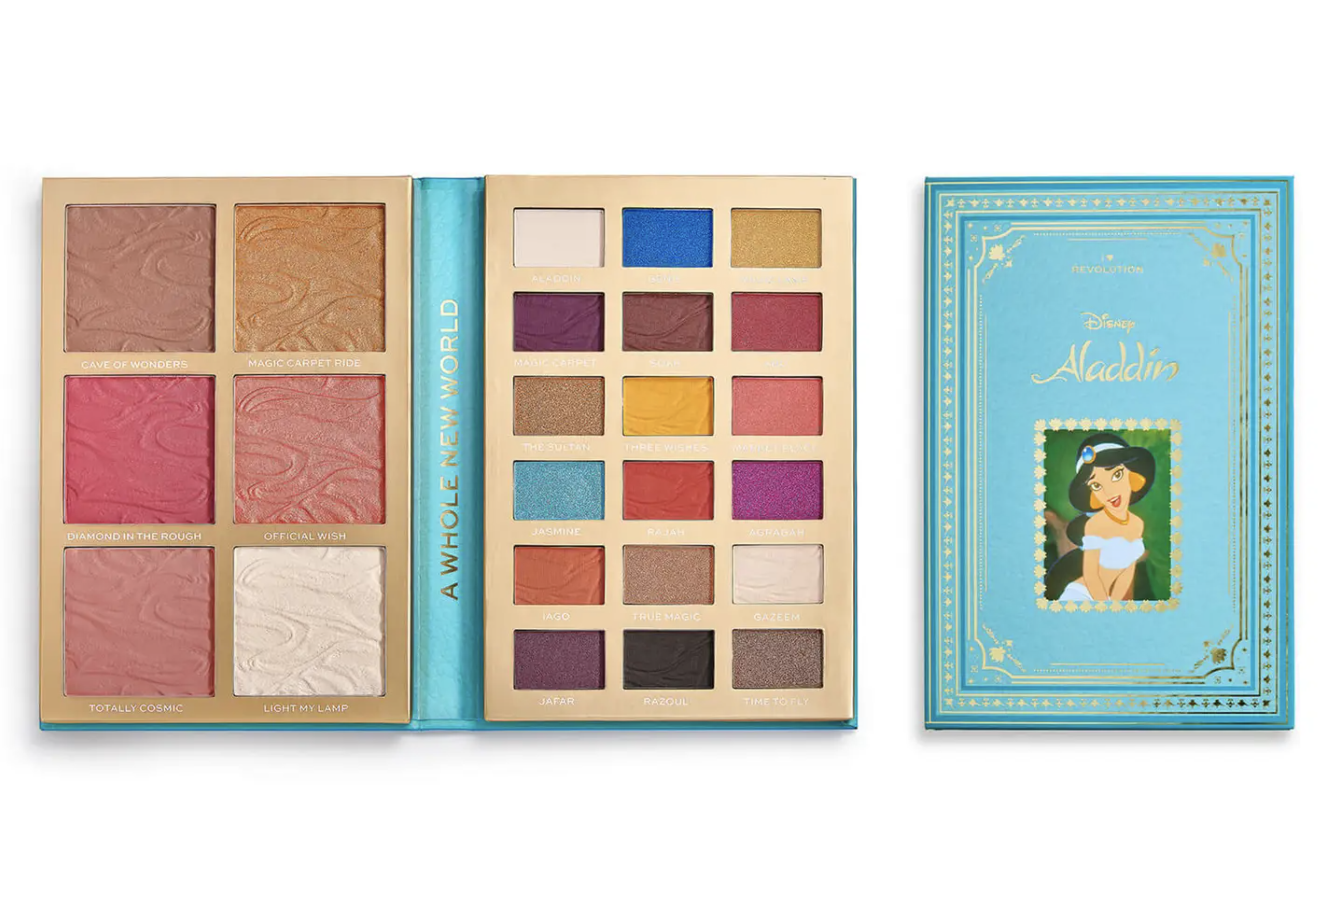 the makeup palette that looks like a storybook with aladdin on it